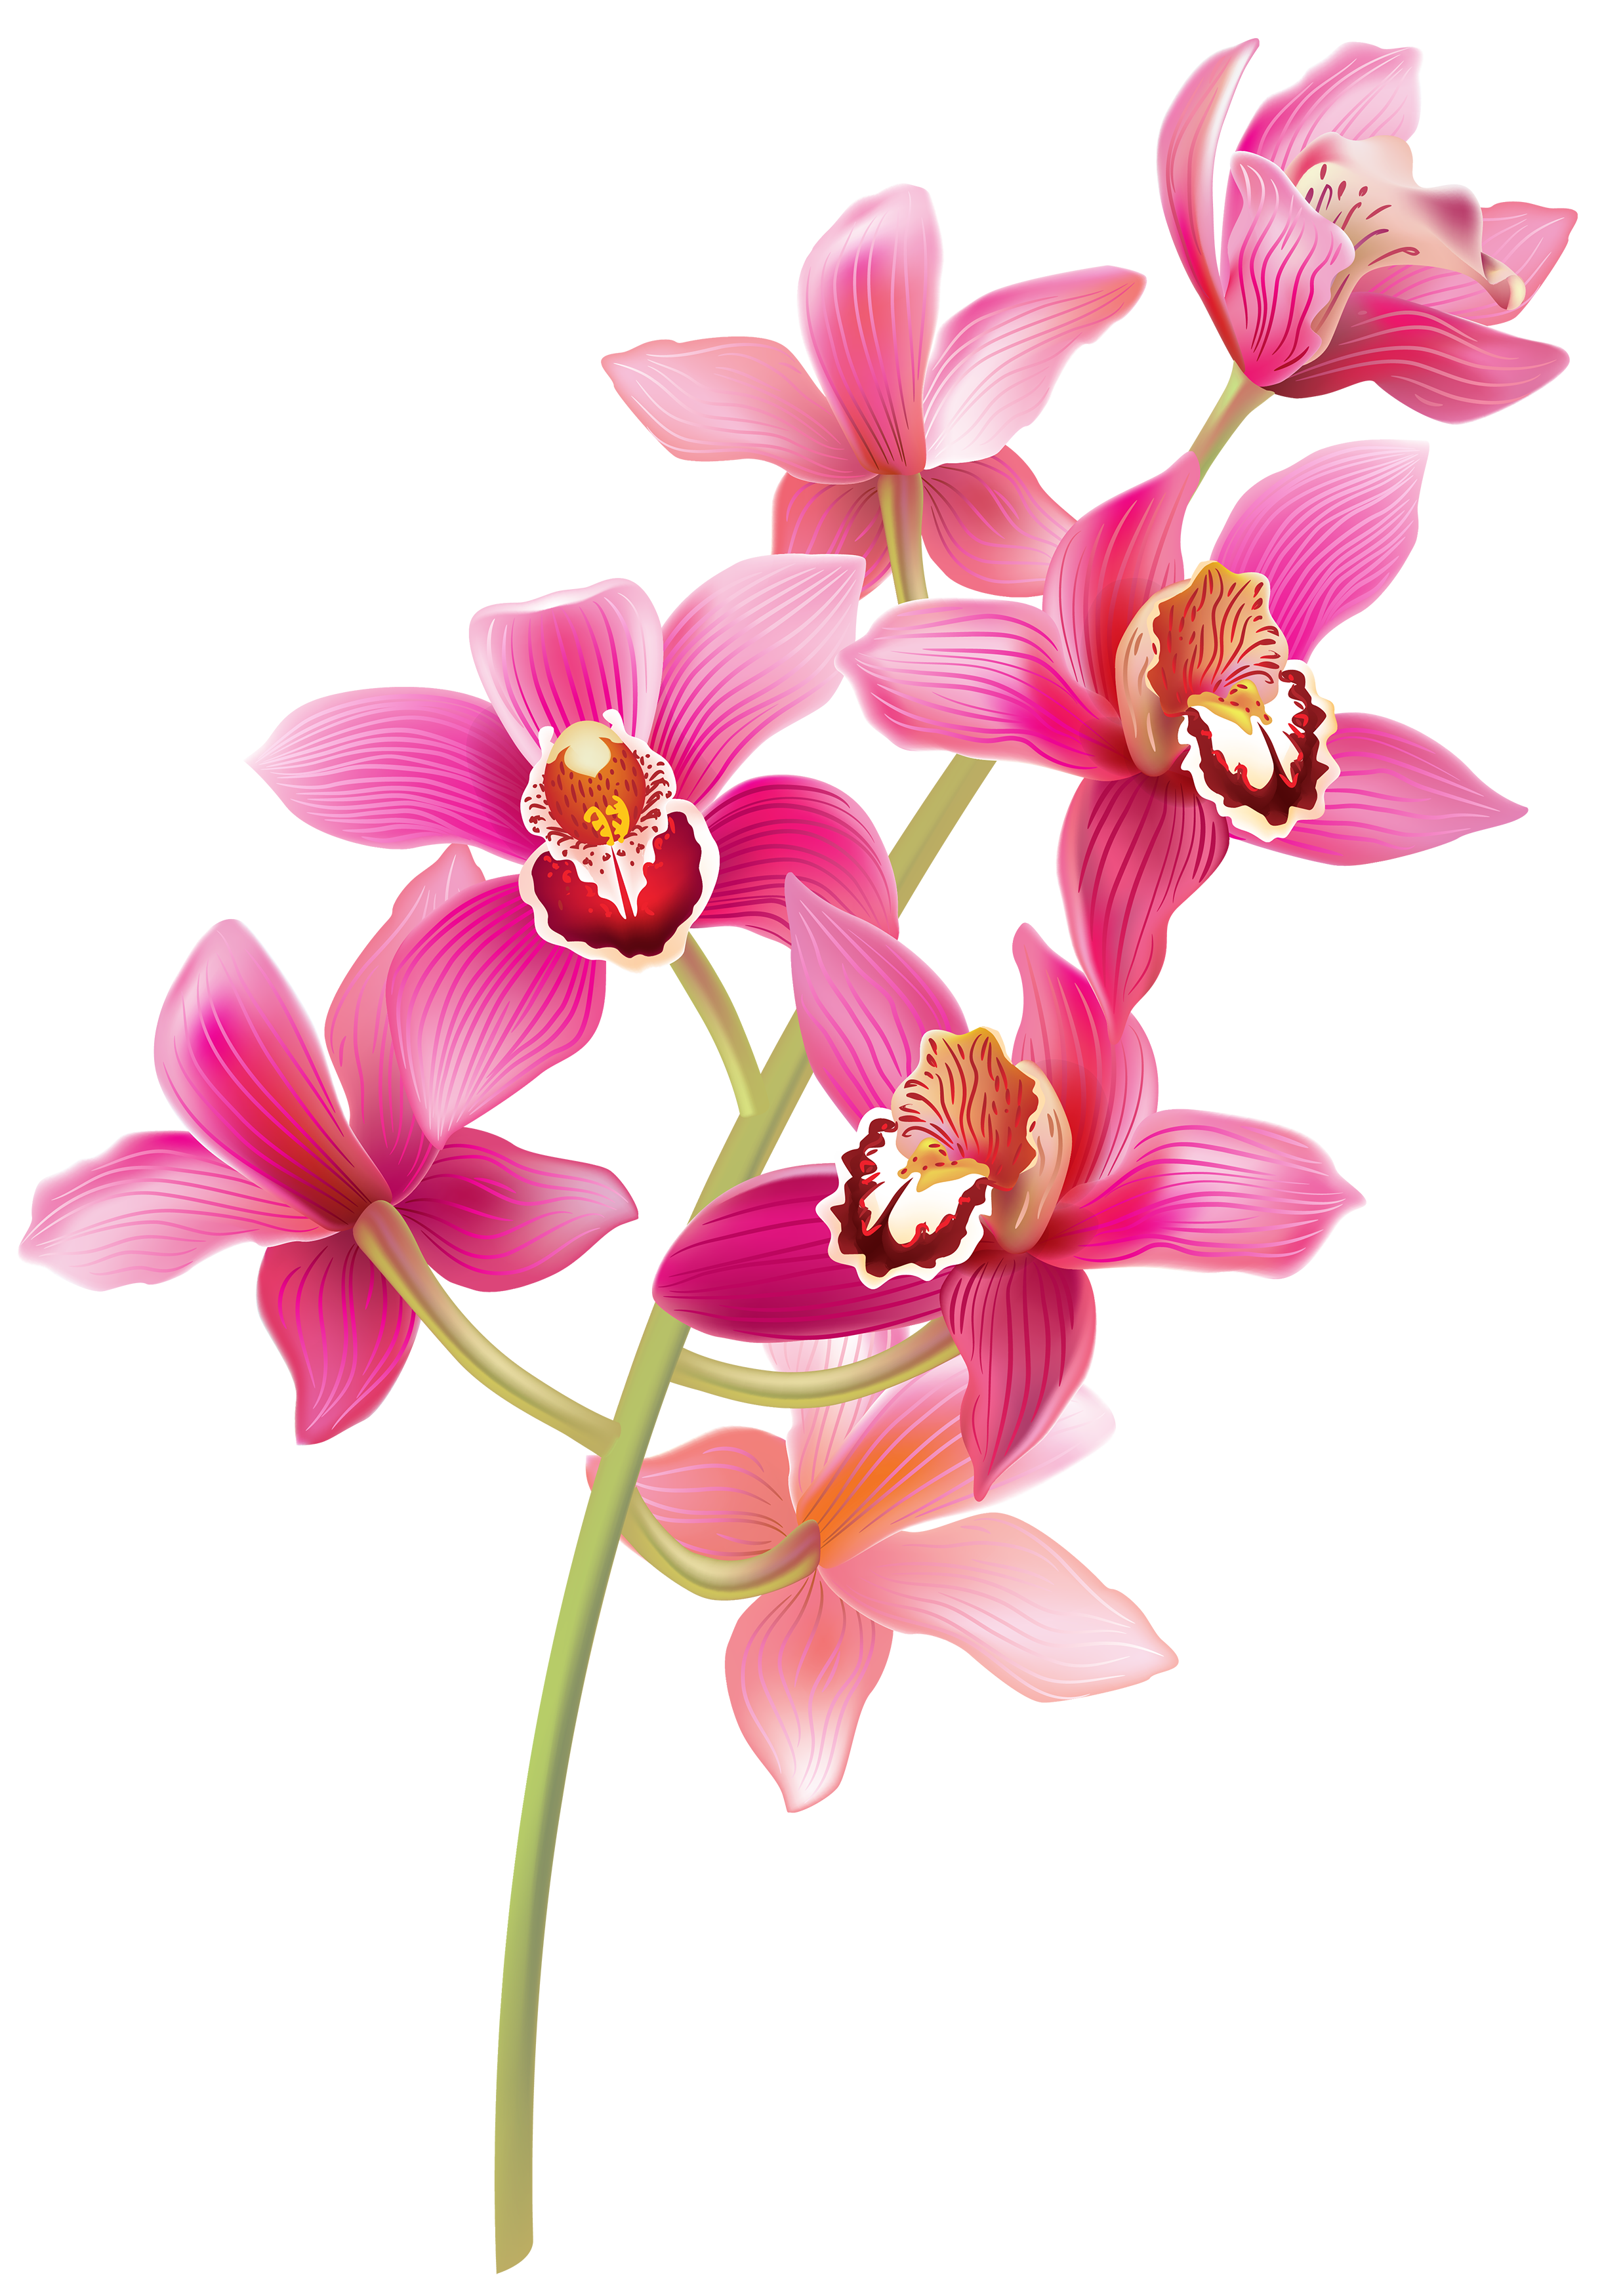 Orchid border clipart clip art free library Orchid clipart border clipart images gallery for free ... clip art free library